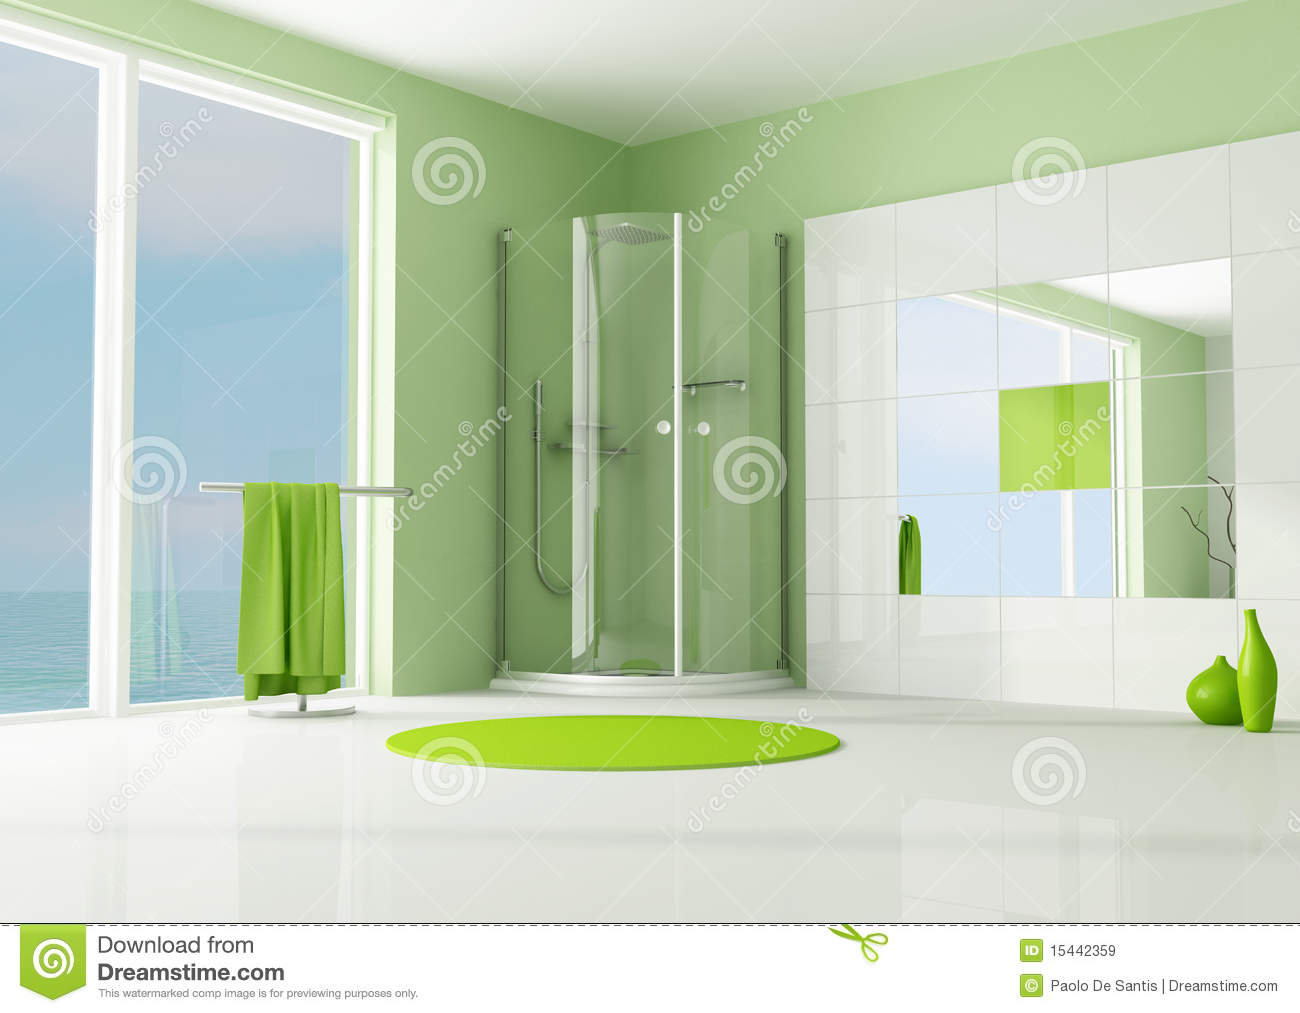 salle de bains verte avec la douche de cabine images libres de droits image 15442359. Black Bedroom Furniture Sets. Home Design Ideas